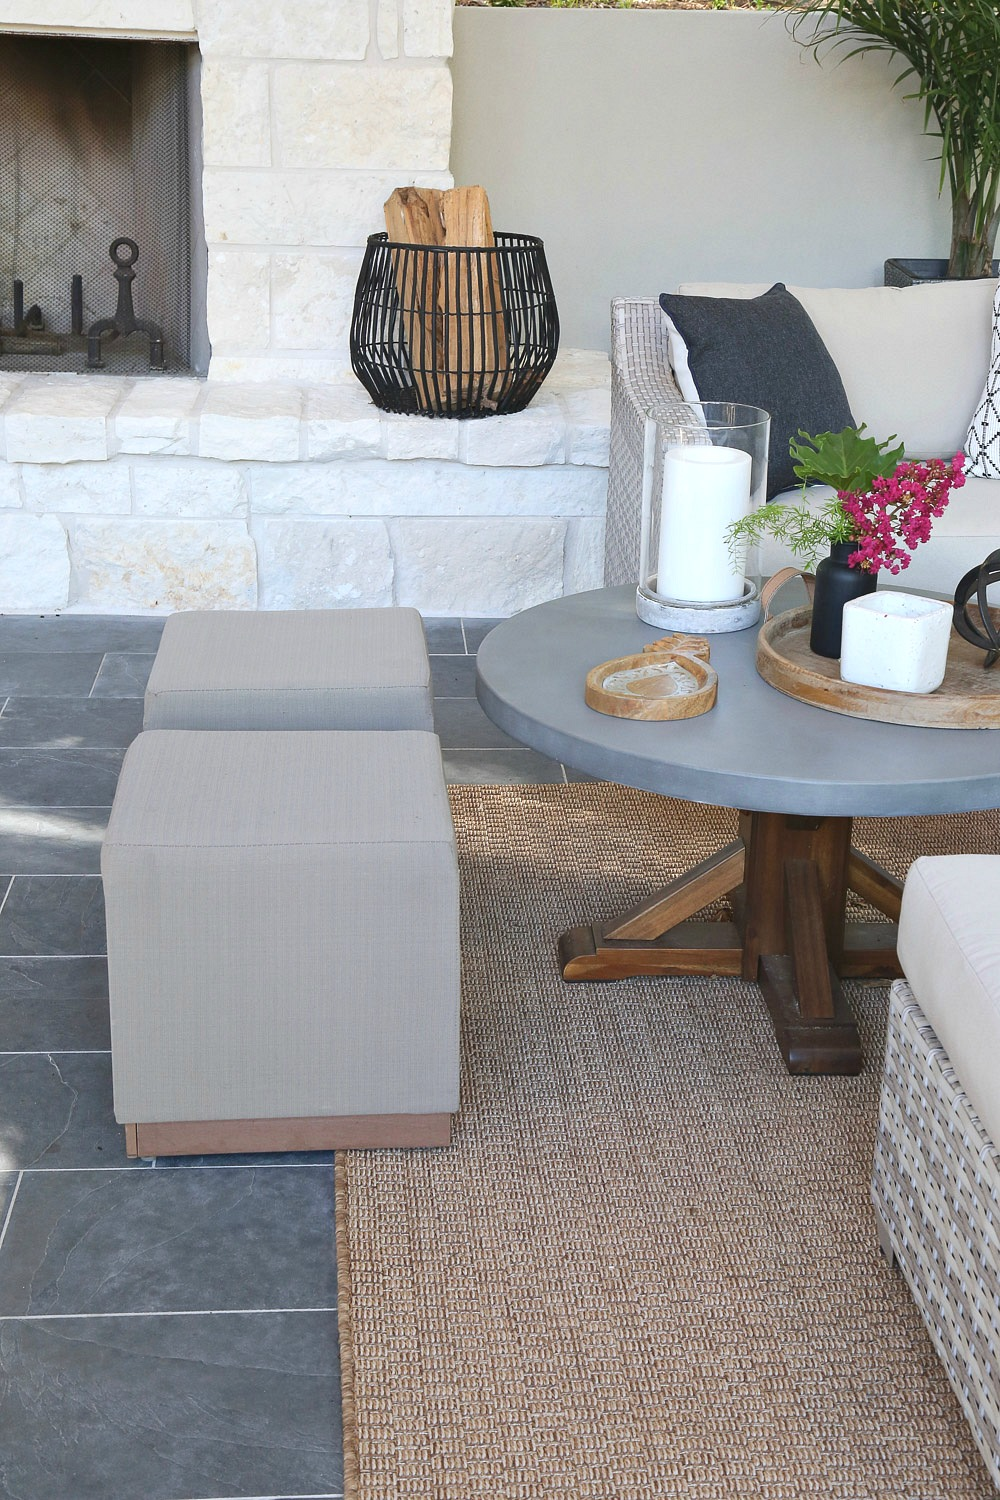 Small outdoor ottomans for extra seating around coffee tables.